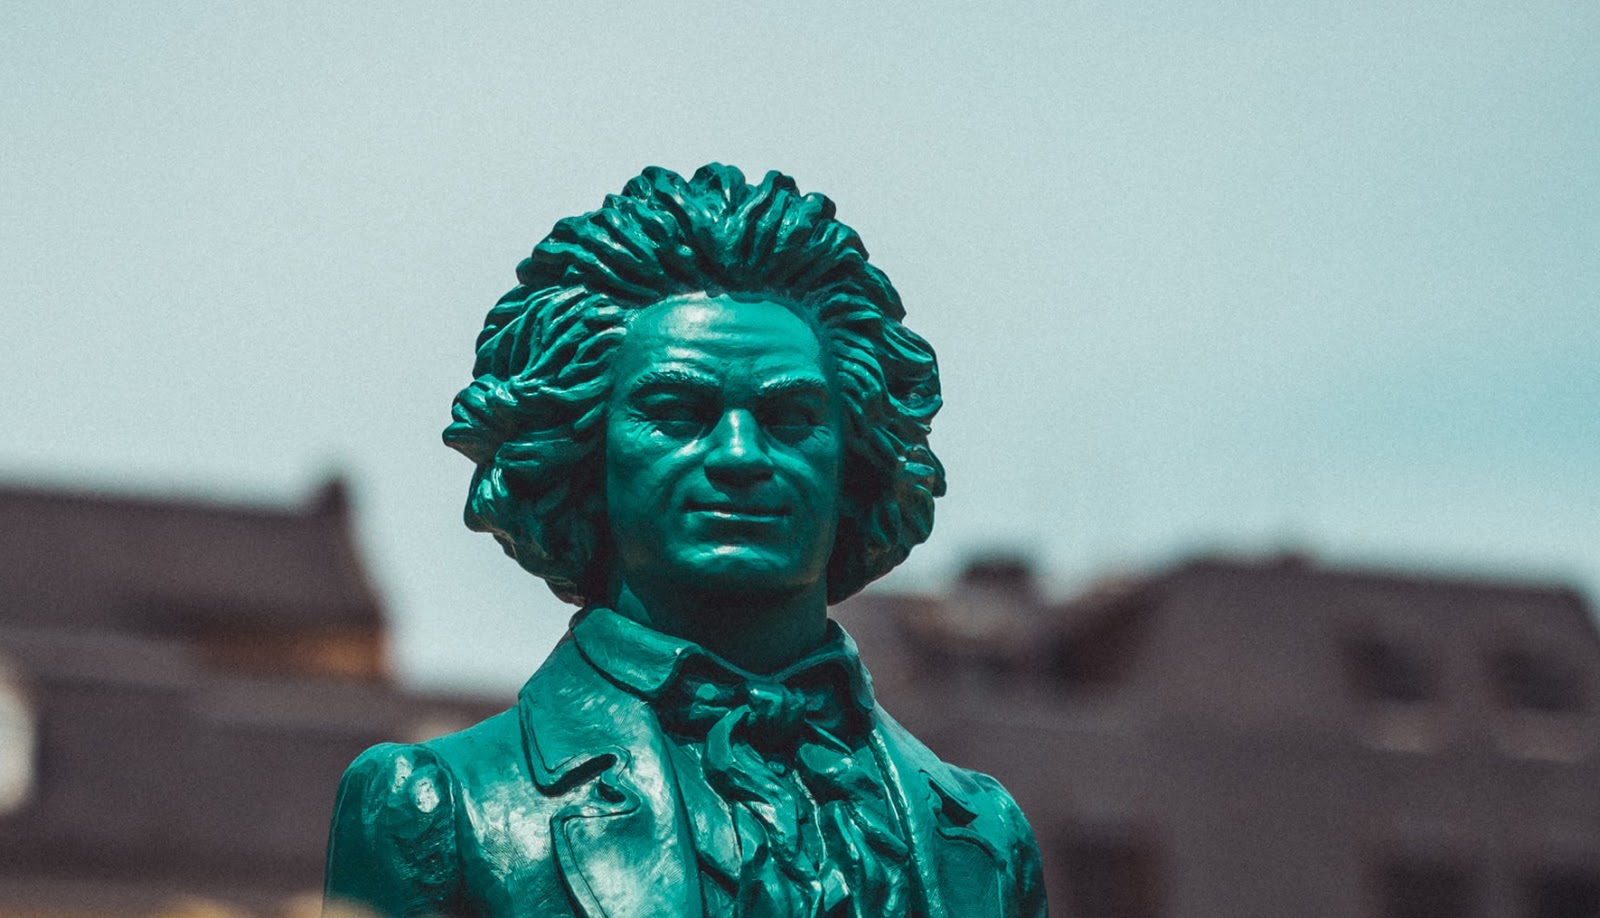 Beethoven: the story behind the 9th symphony